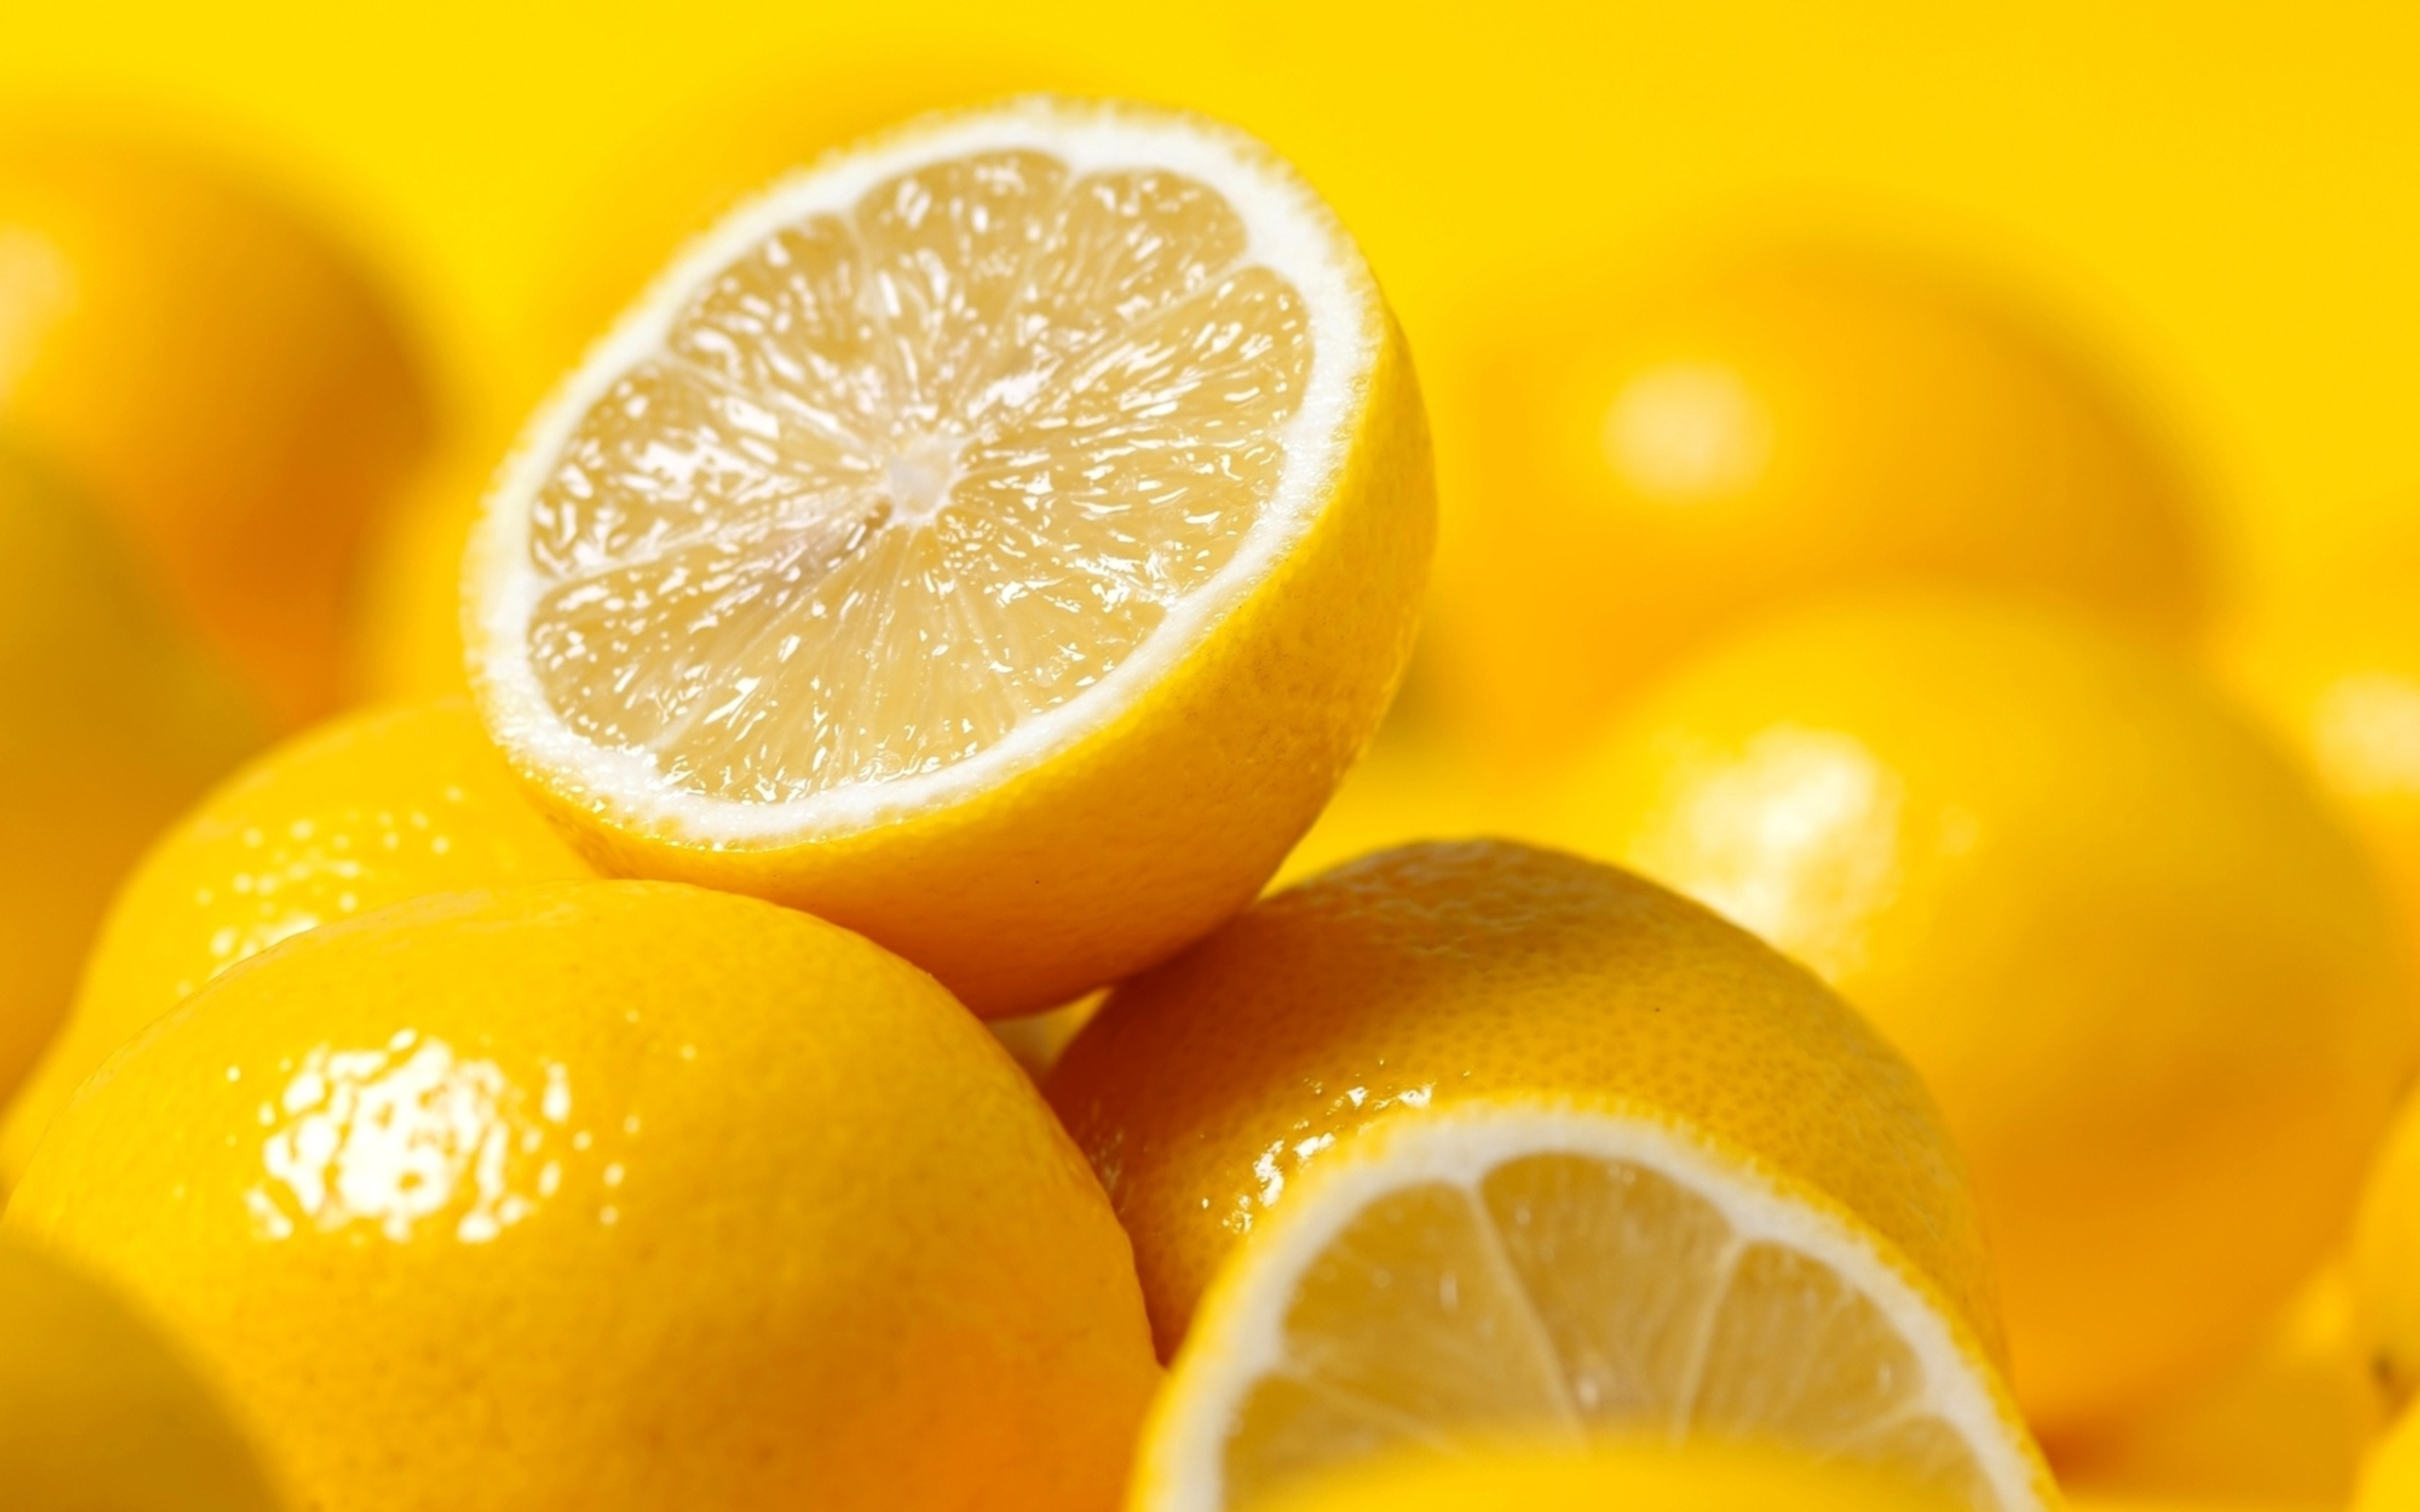 lemon-wallpaper-26121-26806-hd-wallpapers